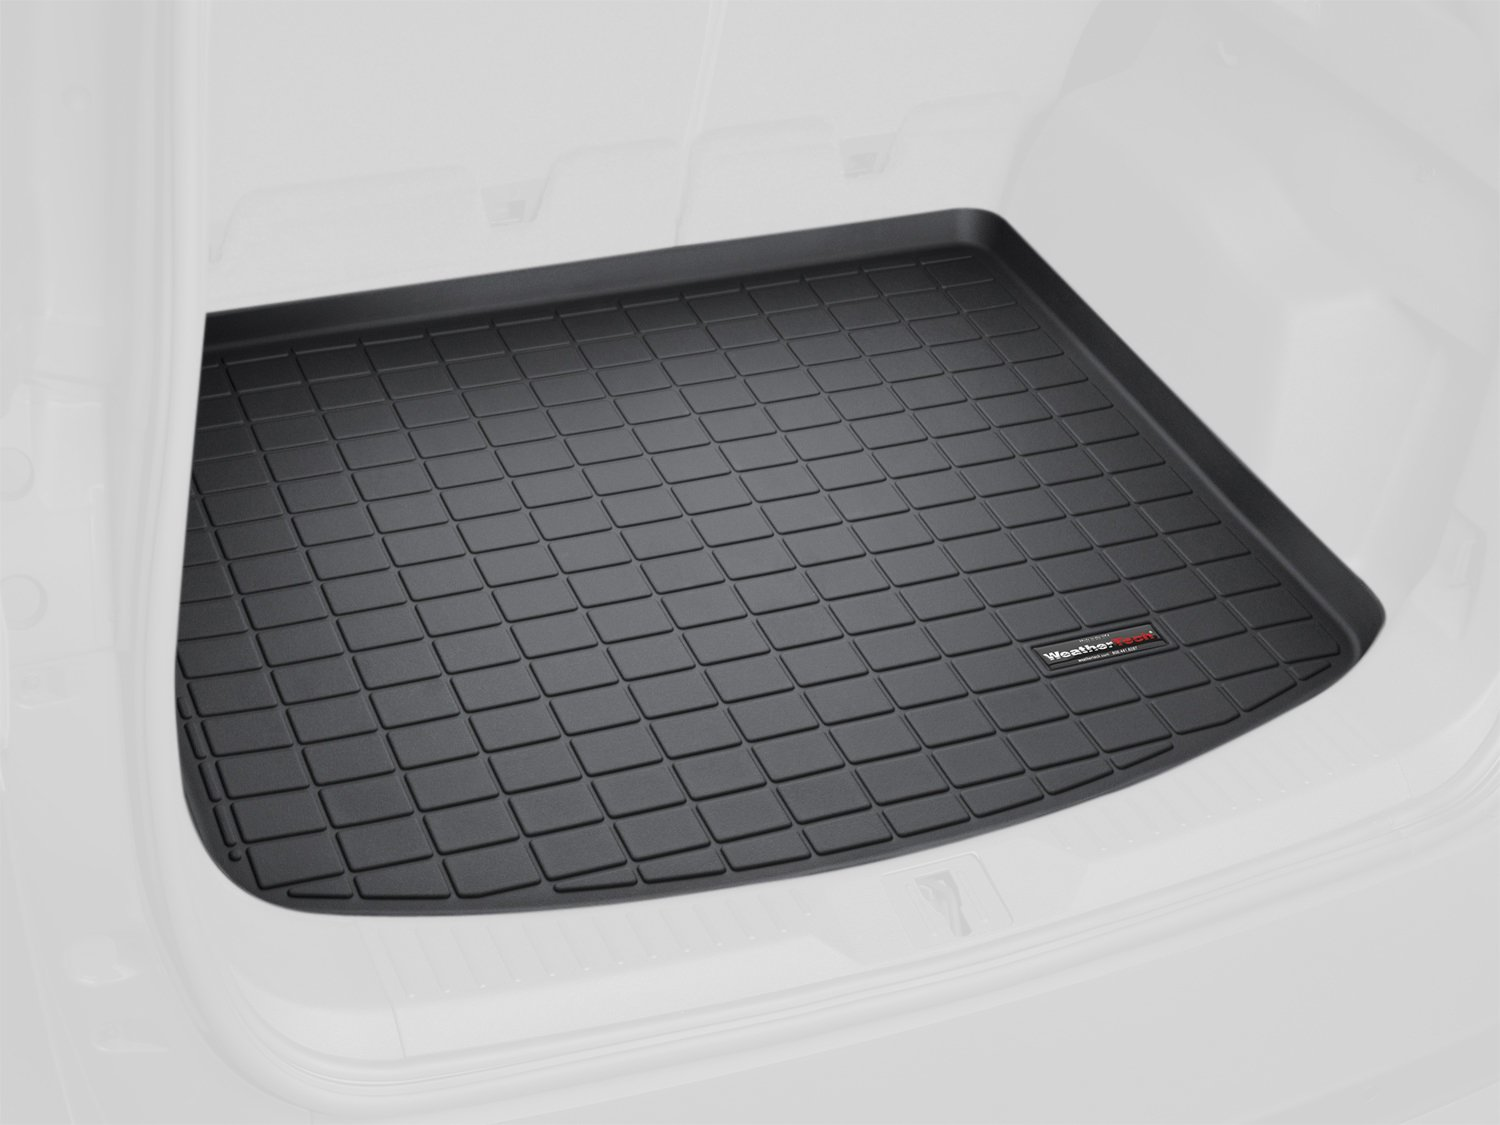 WeatherTech Custom Fit Cargo Liners for Audi A8, A8L, Black